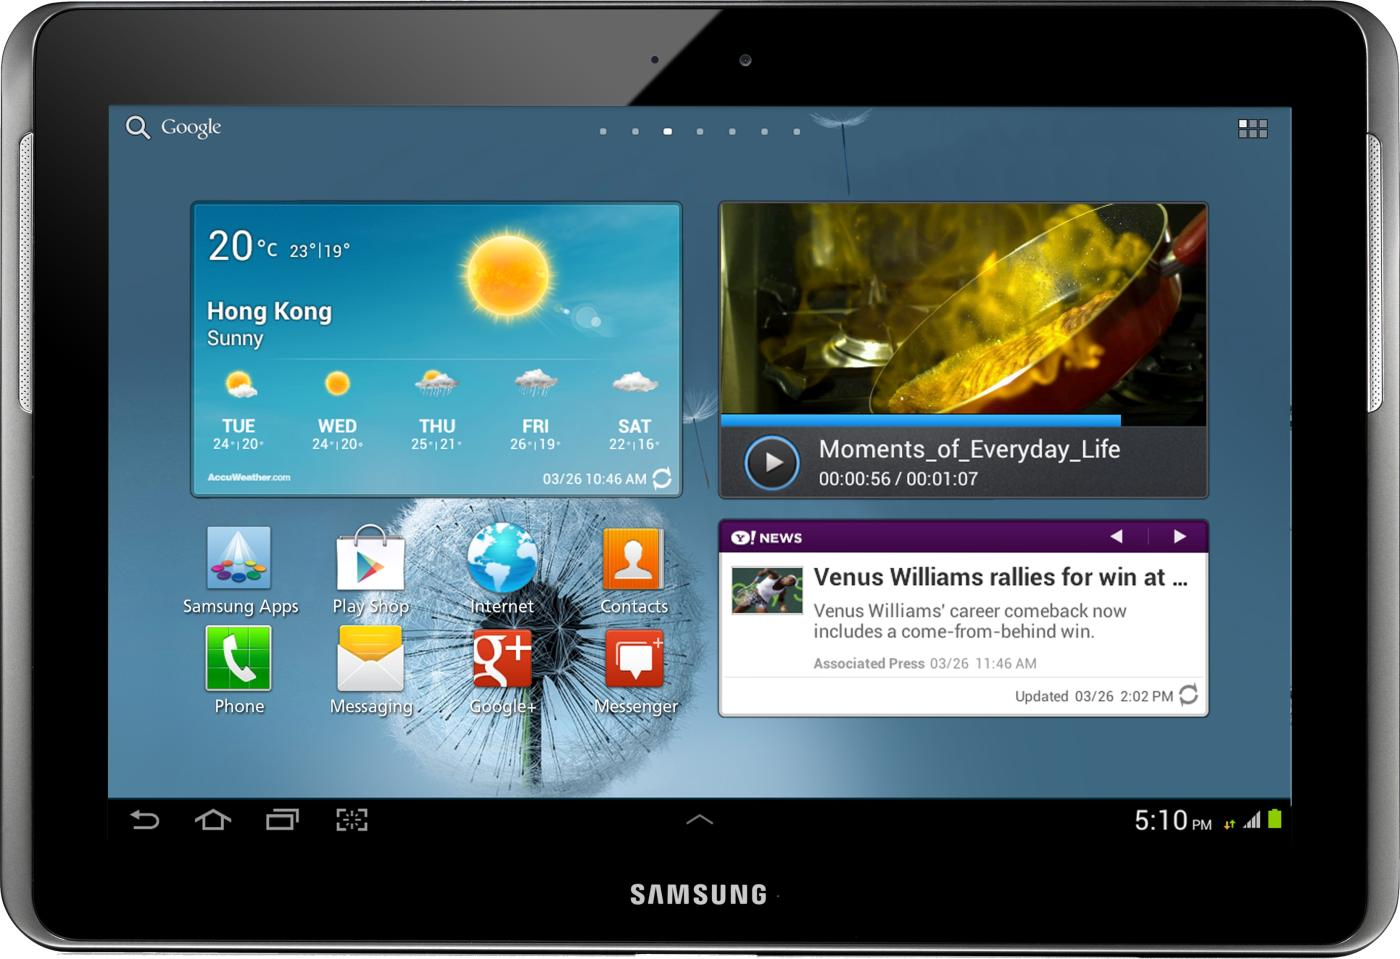 samsung galaxy tab 2 10 1 p5110 manual user guide mobile phone rh manual gadgets blogspot com Save Email Samsung Galaxy Tablet 10.1 Samsung Galaxy 10.1 Review CNET